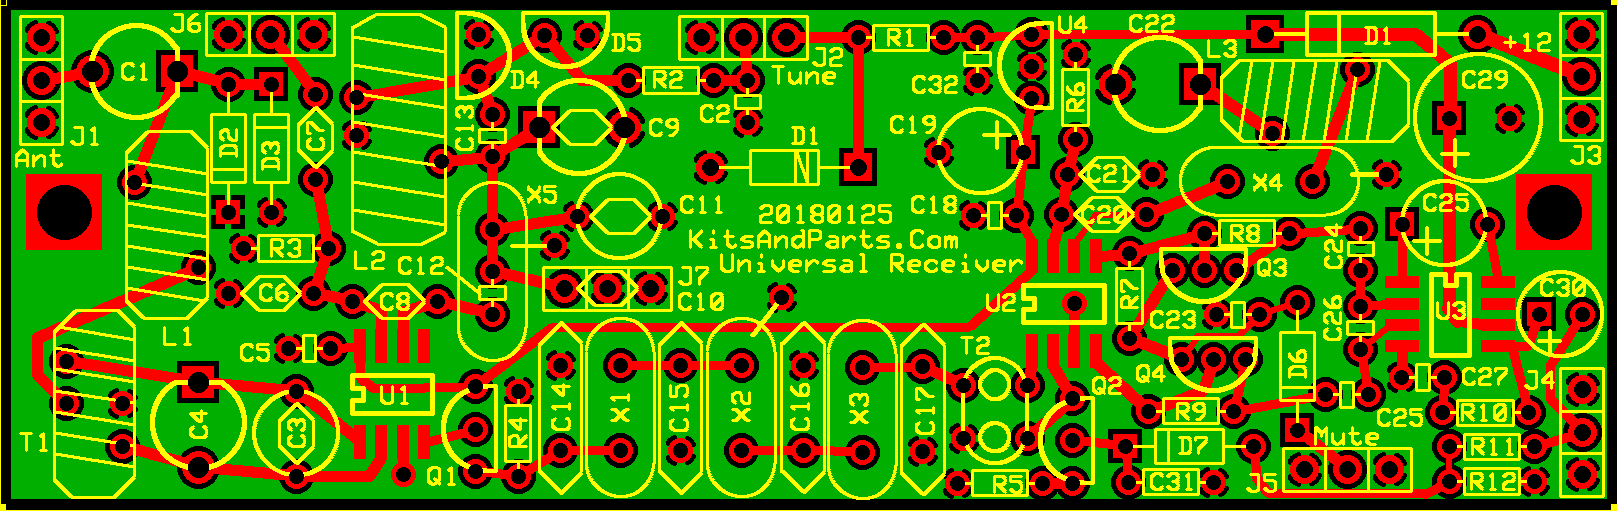 receiver_PCB_20180125.png